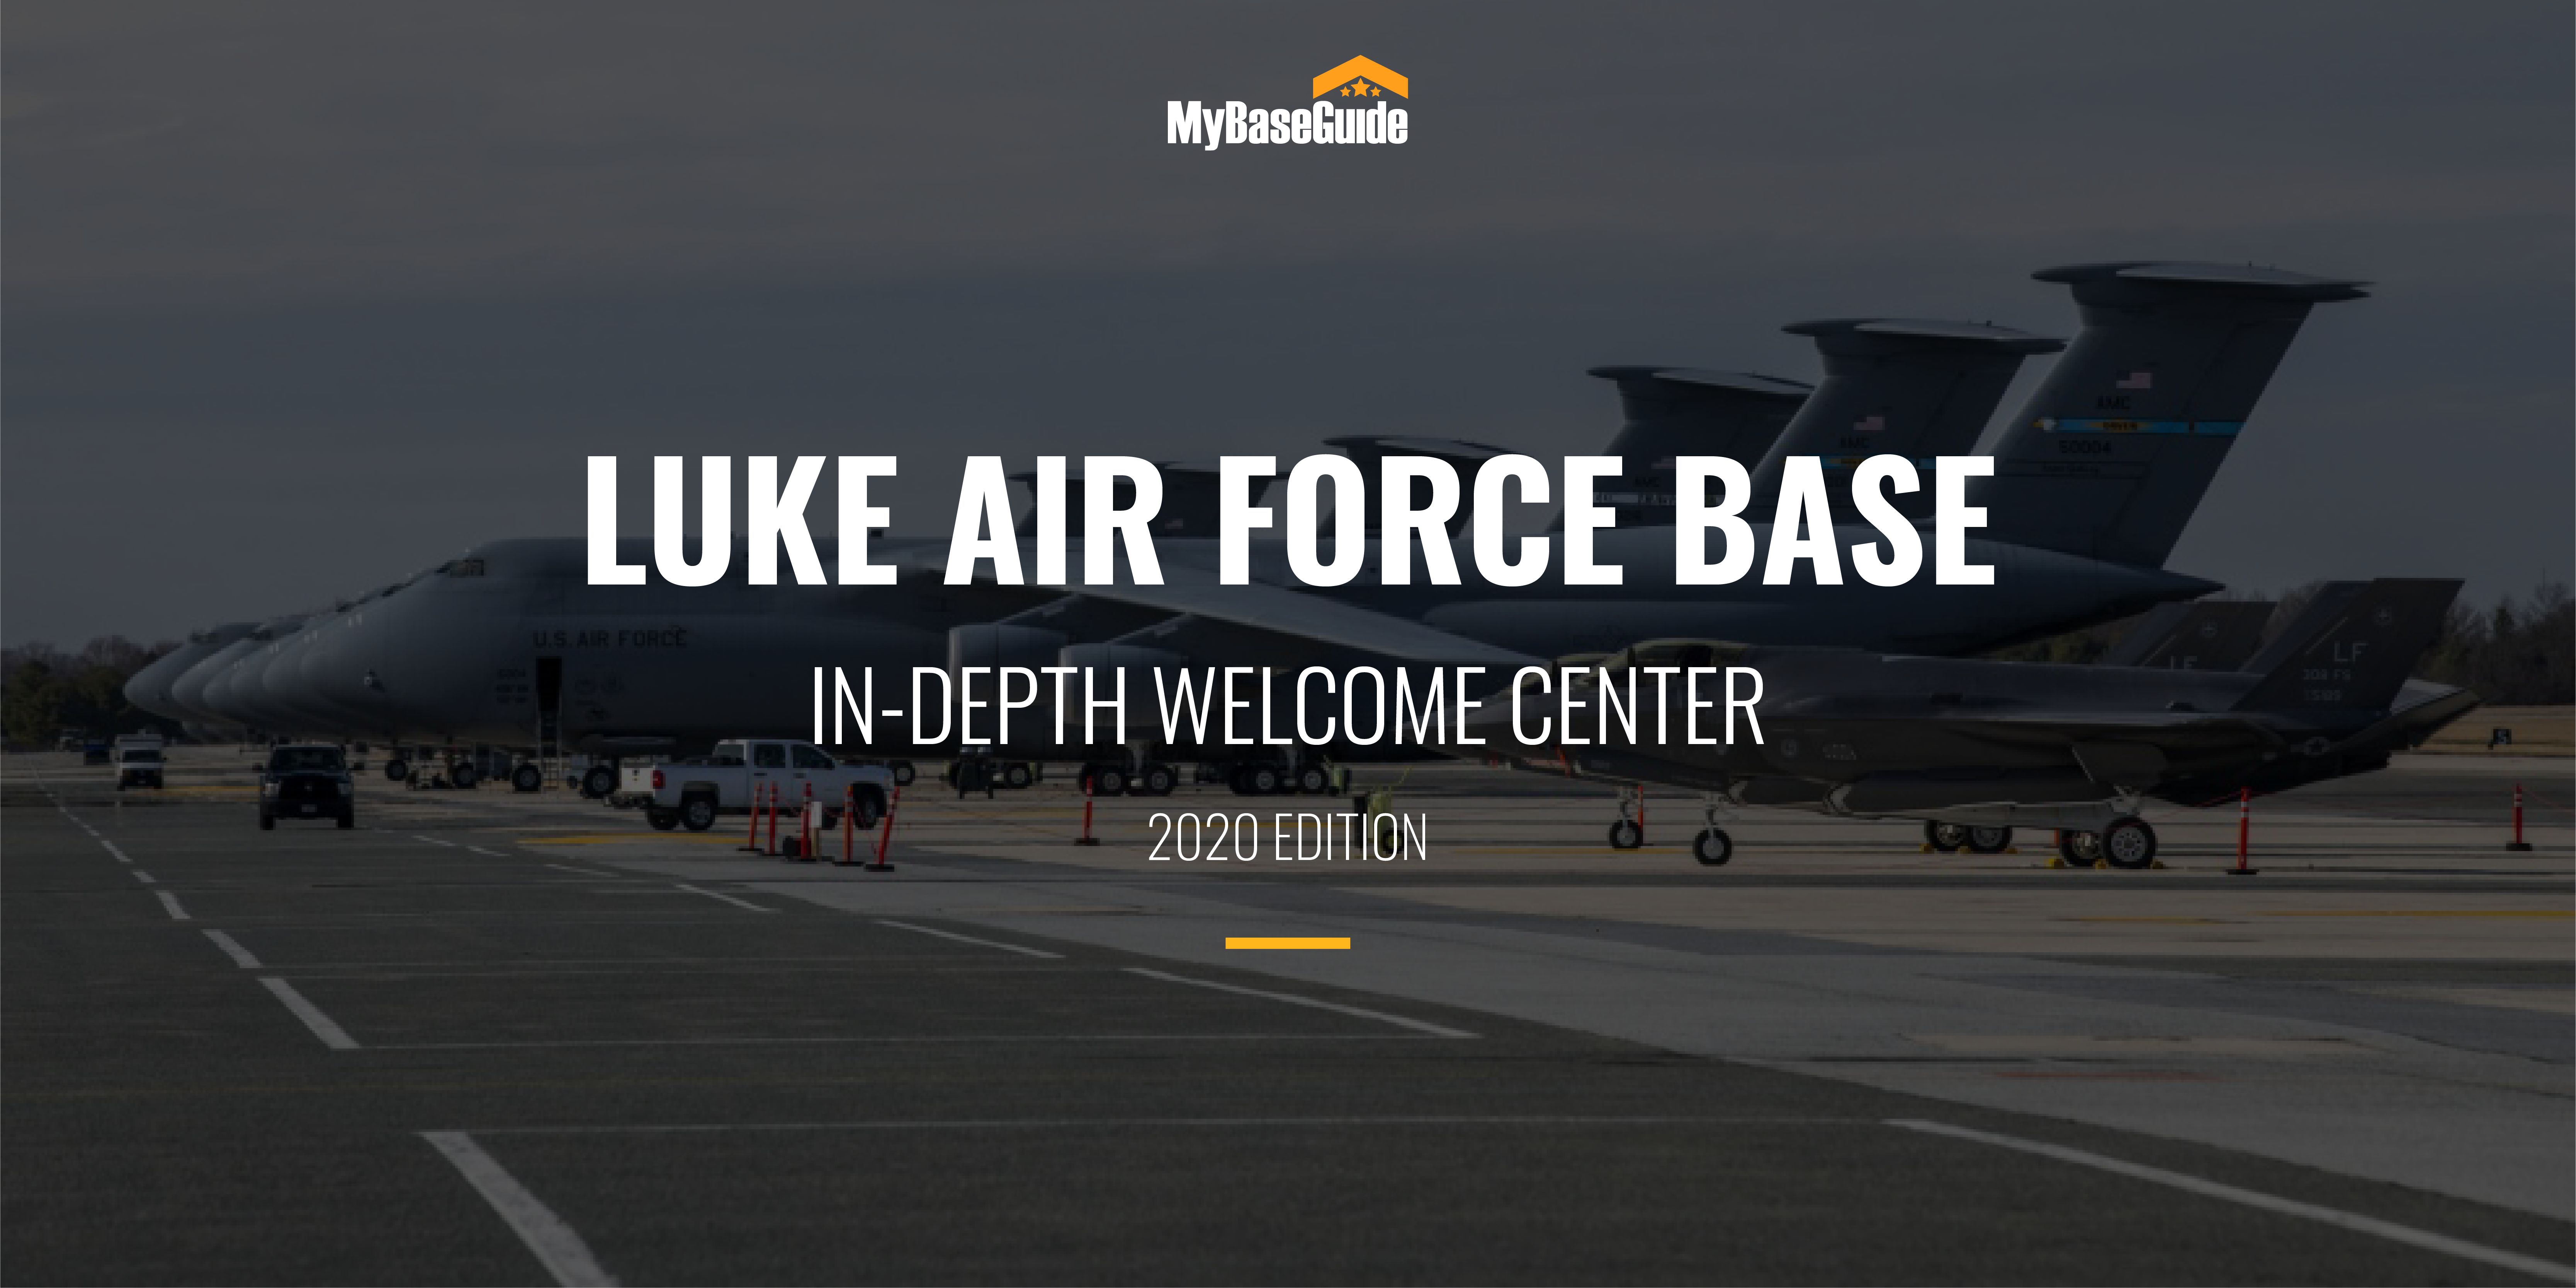 Luke Air Force Base: In-Depth Welcome Center